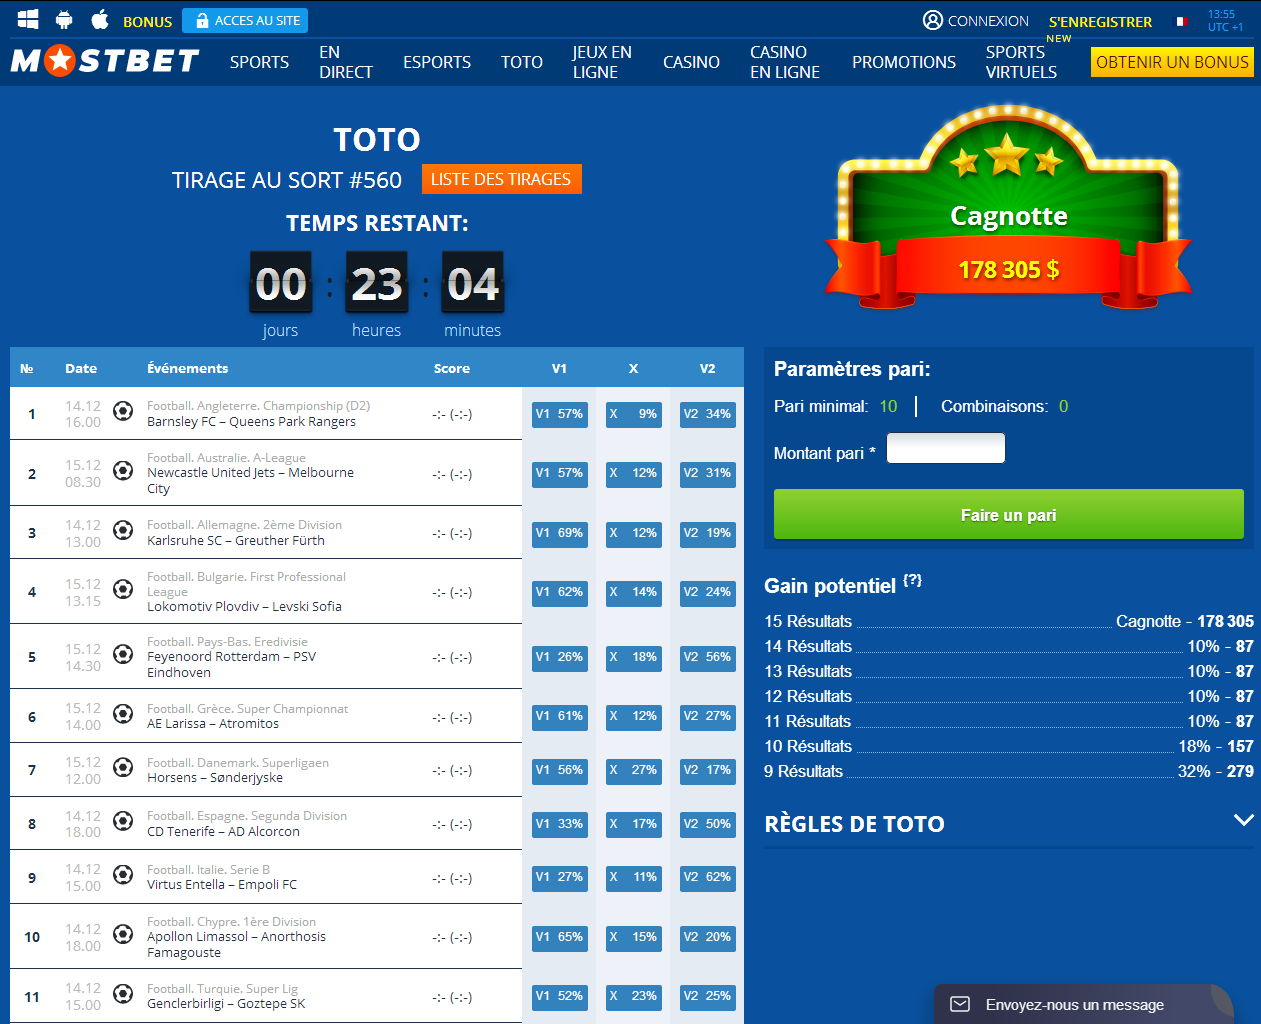 Mostbet Toto Betting